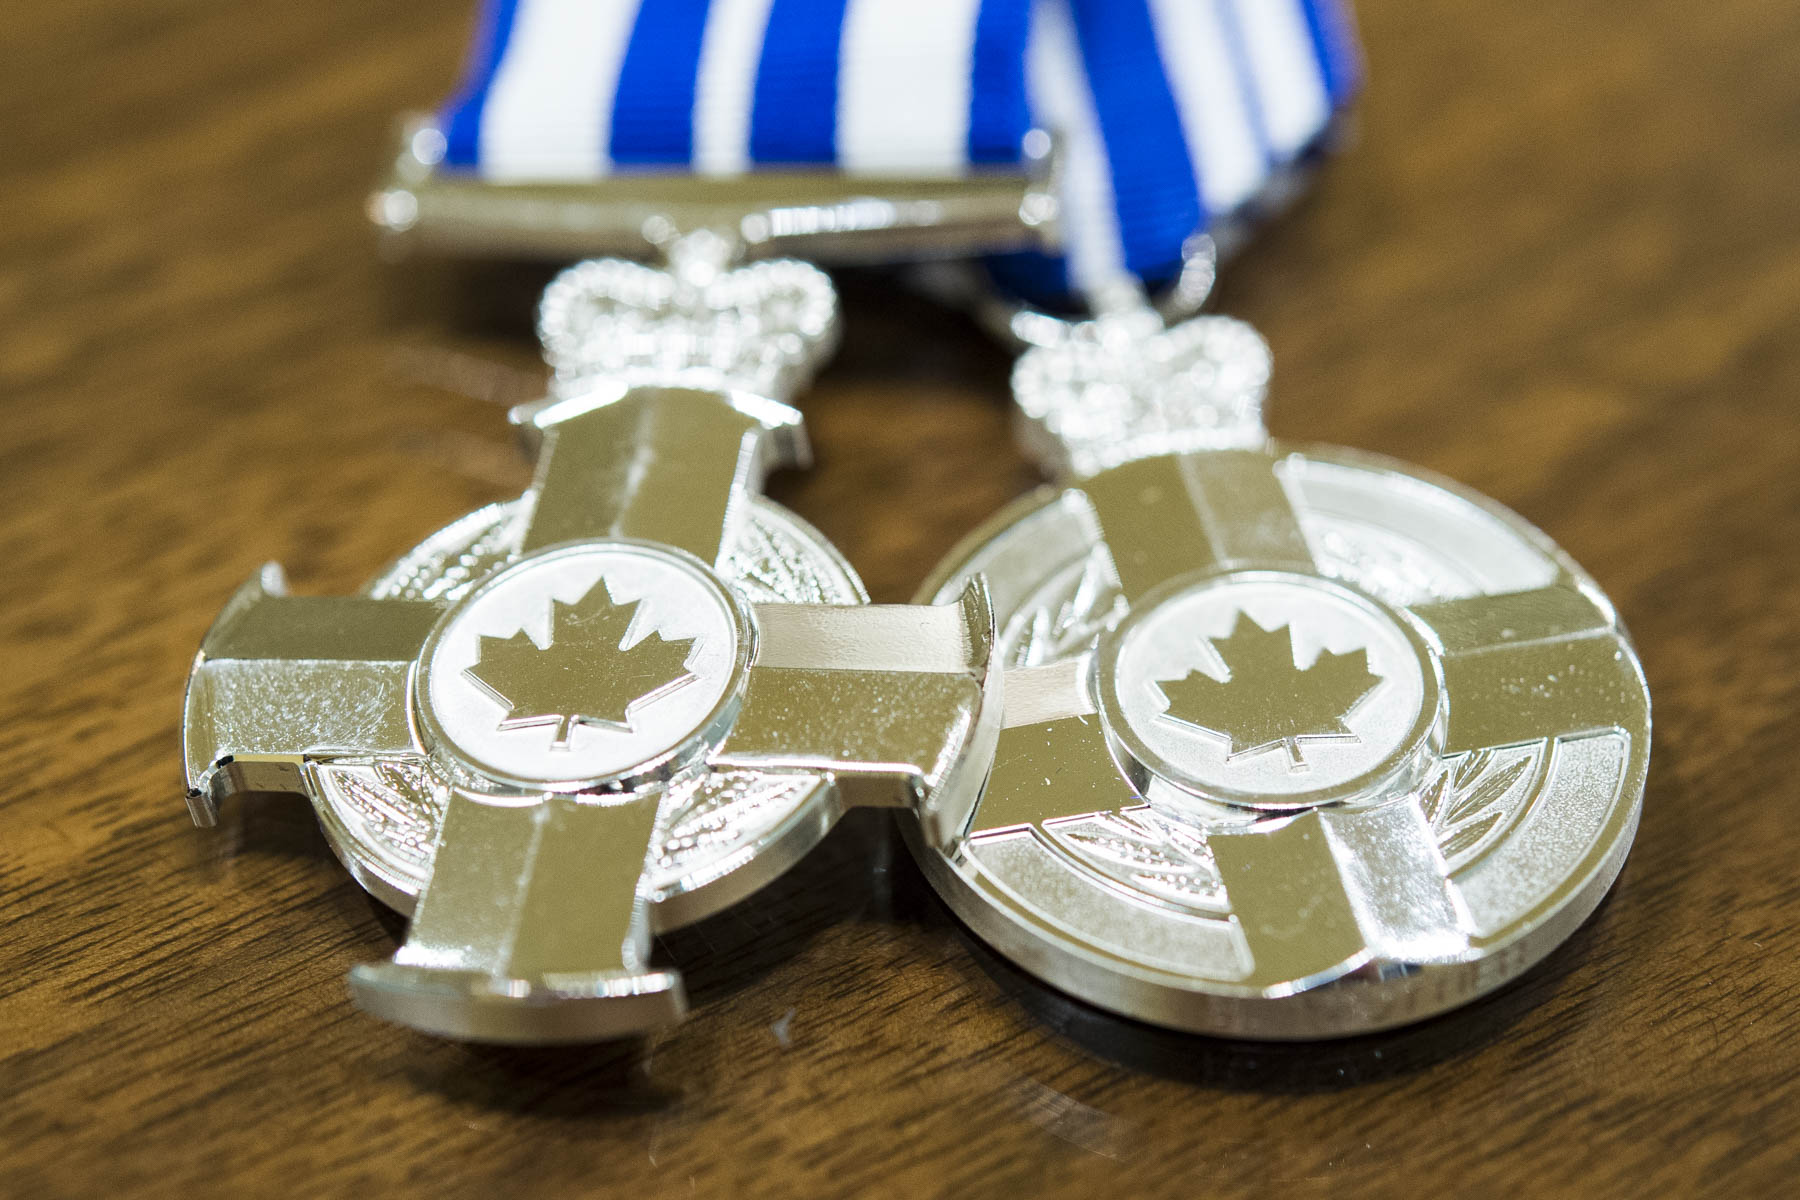 The Meritorious Service Decorations were established to recognize the extraordinary people who make Canada proud. Their acts are often innovative, set an example or model for others to follow, or respond to a particular challenge faced by a community.